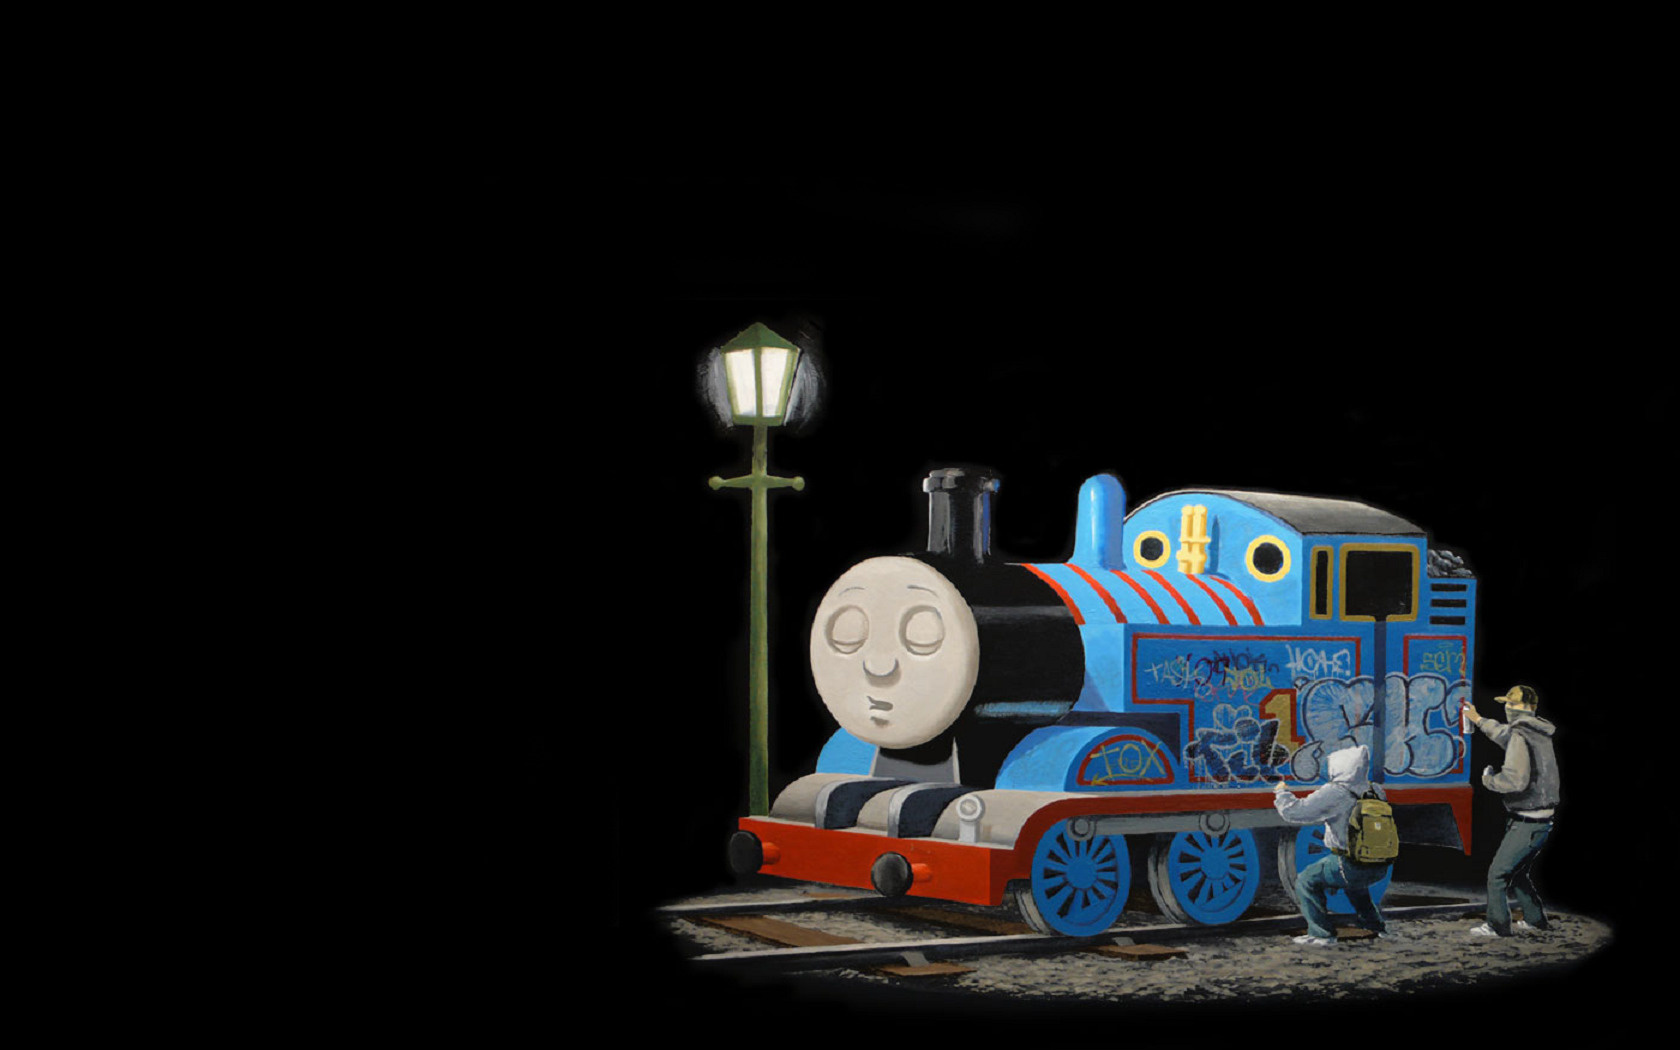 49 thomas the tank engine wallpaper on wallpapersafari - Background thomas and friends ...